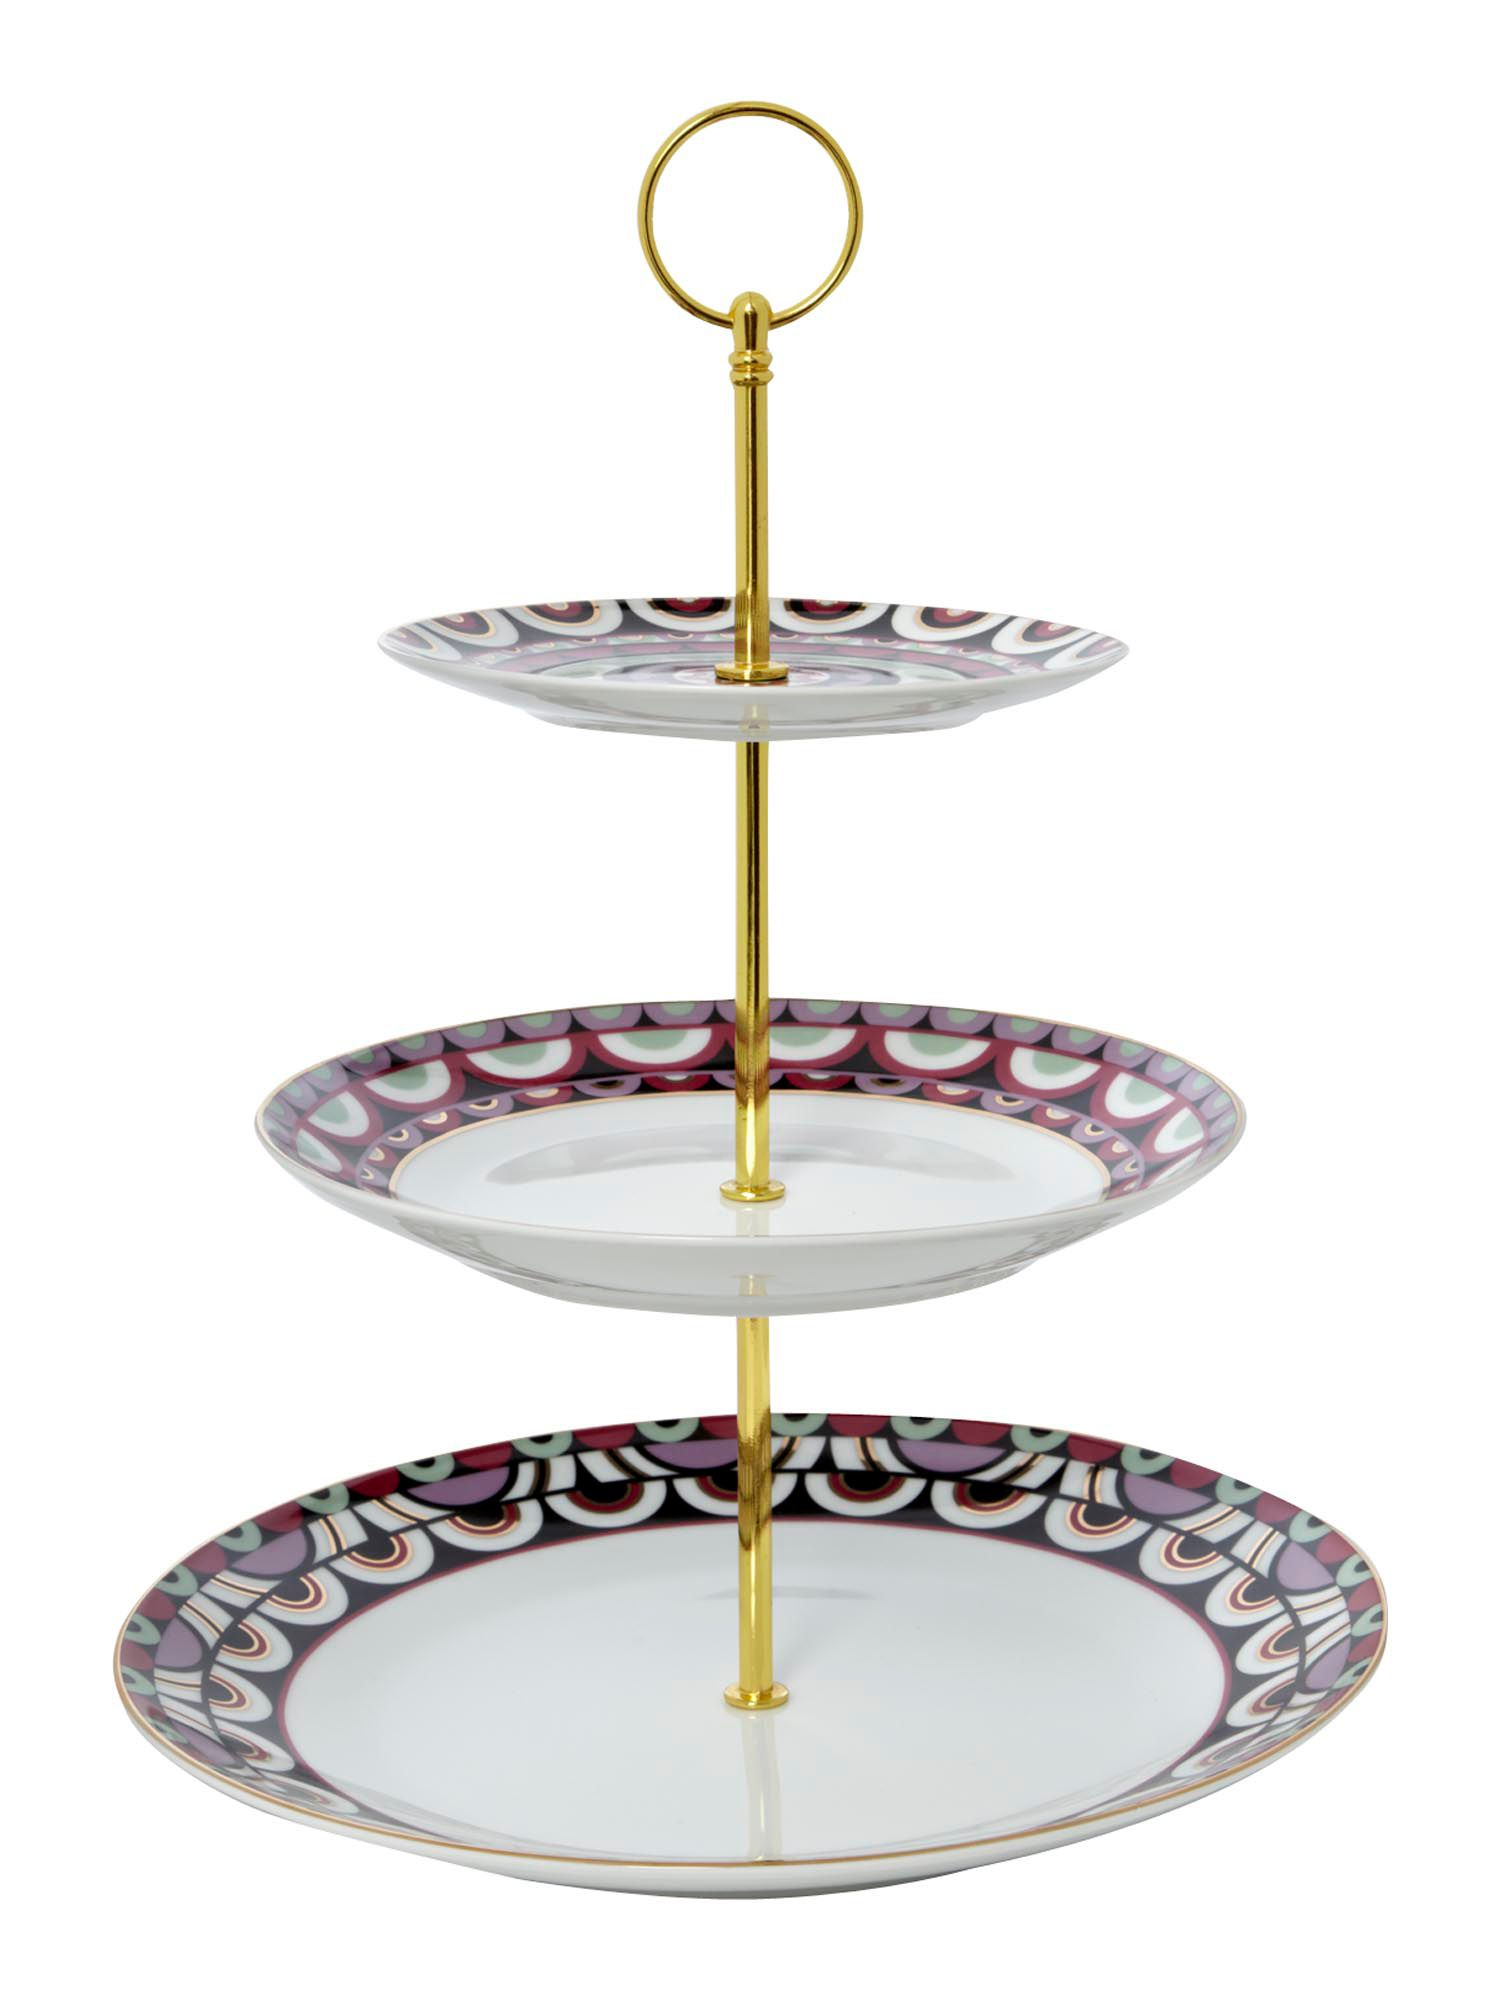 Persia Jewel 3 tier cakestand